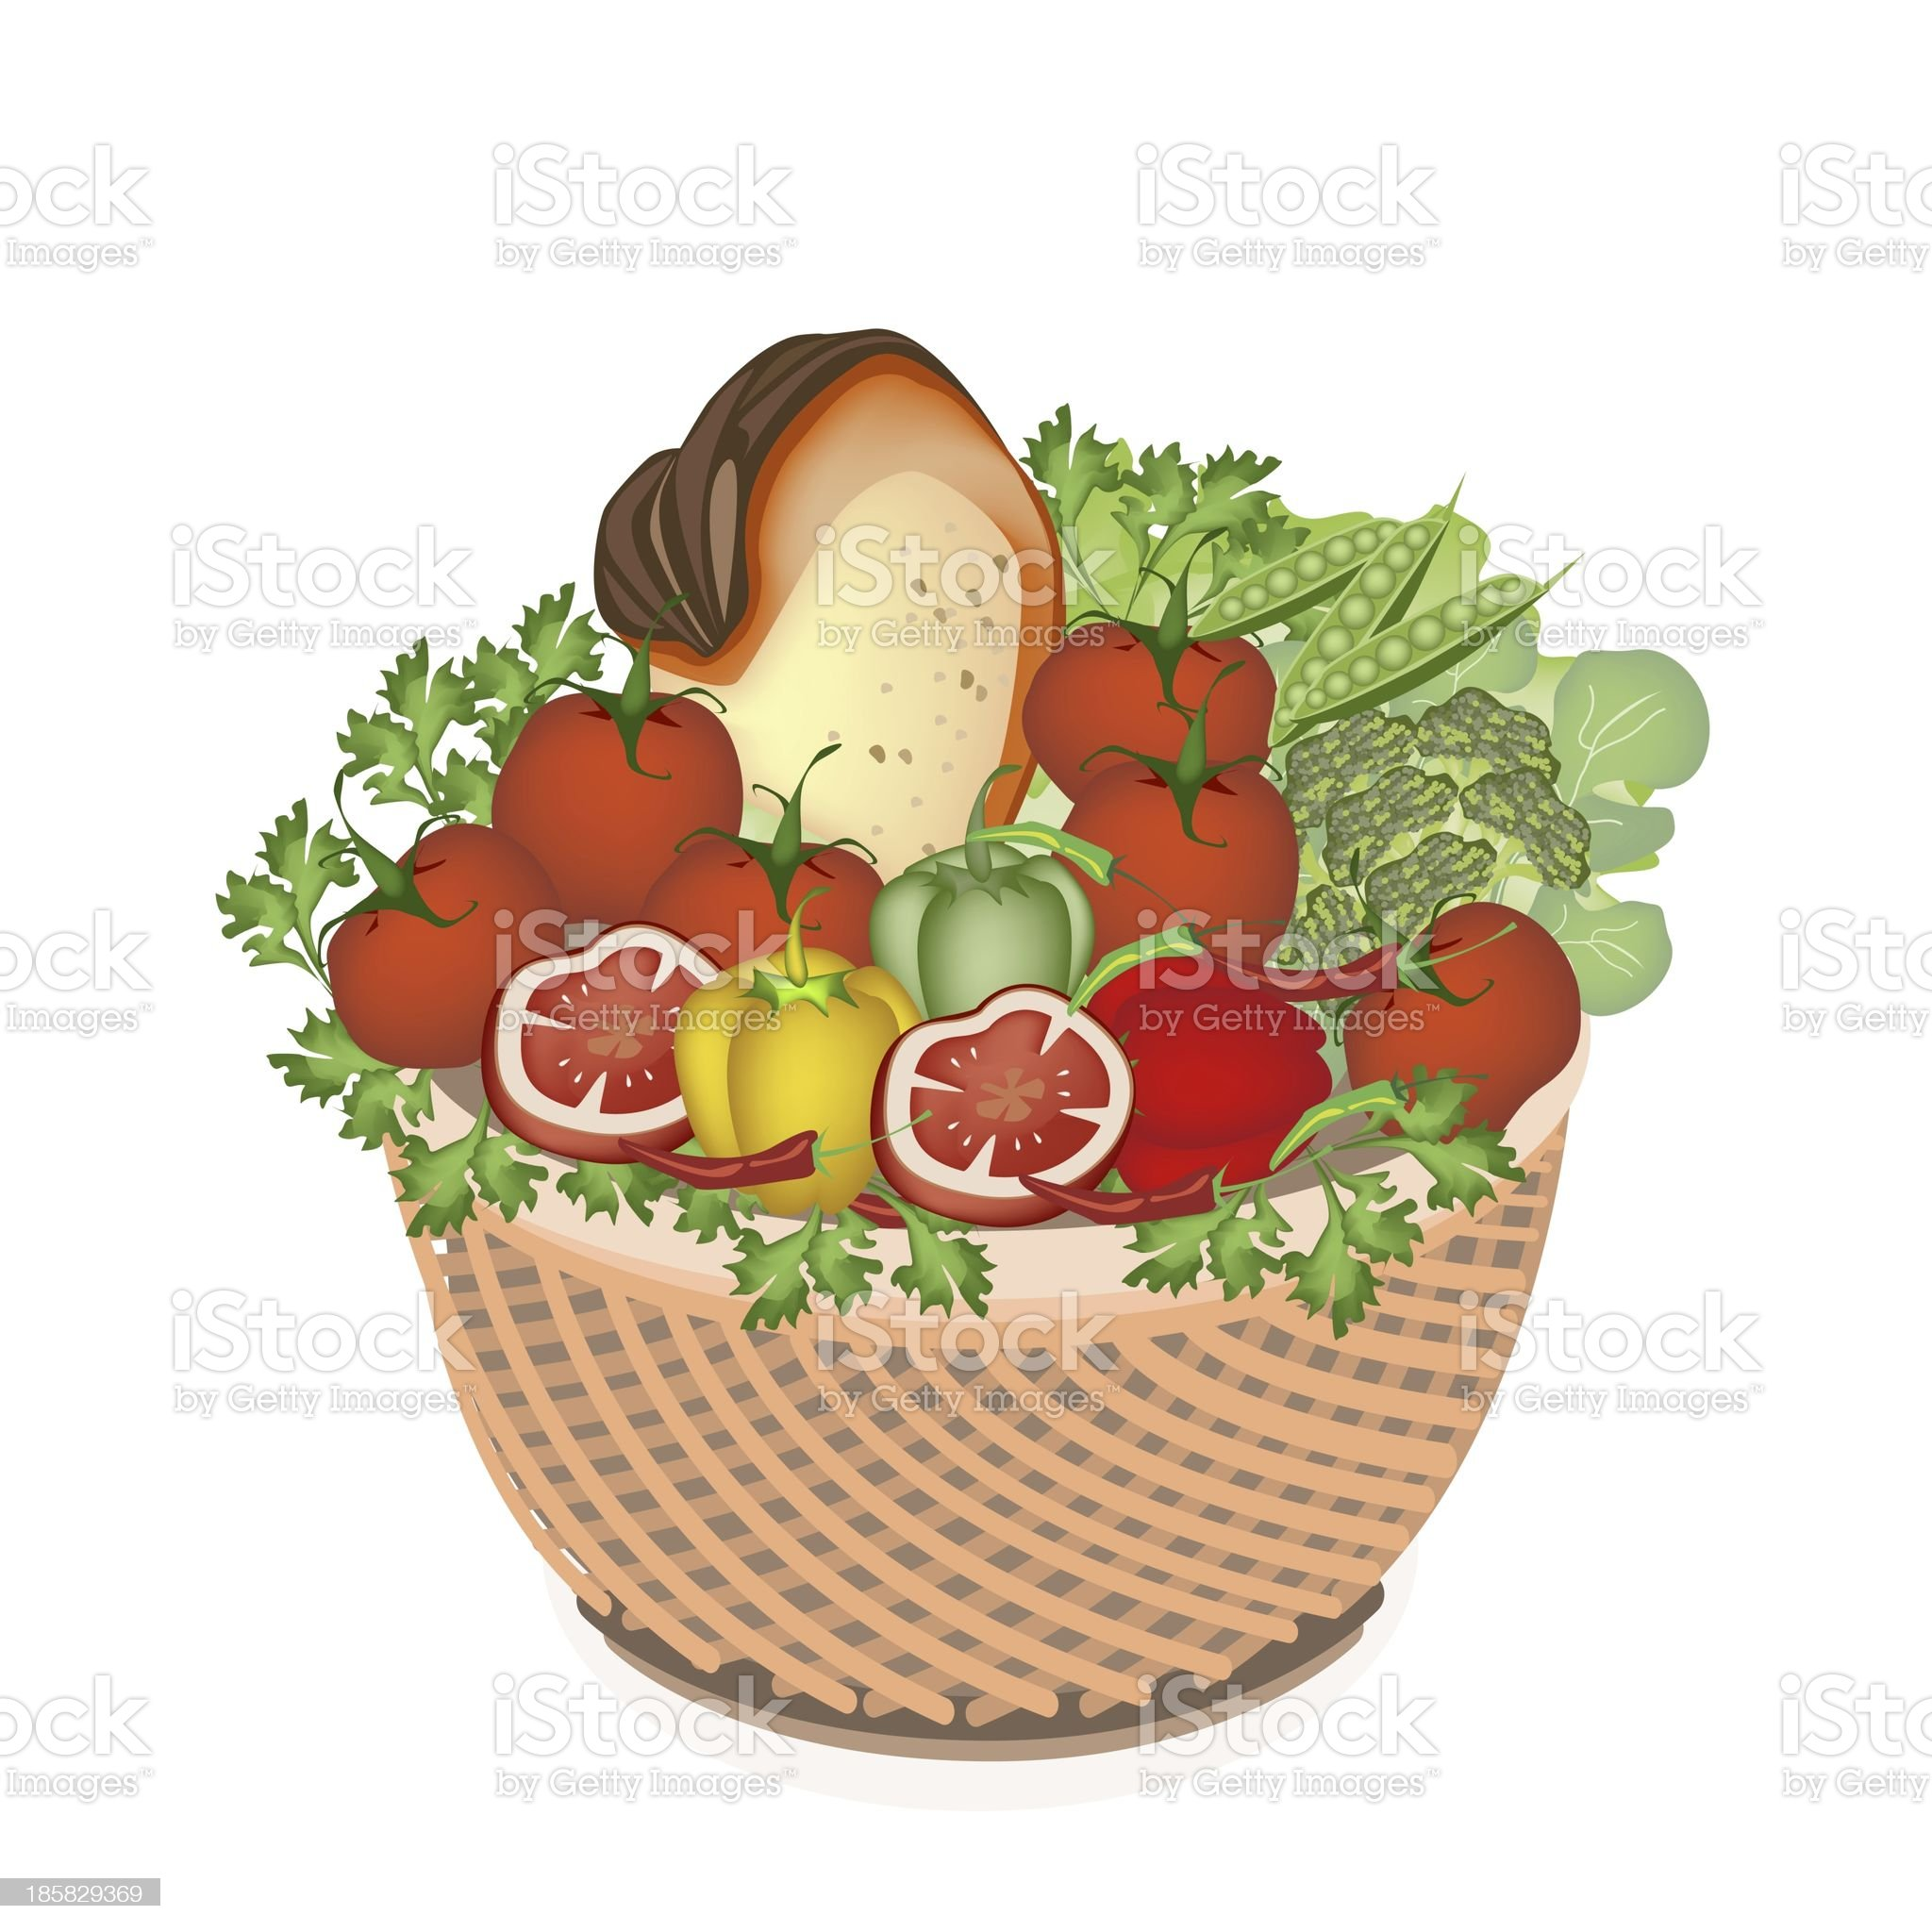 Health  Nutrition Vegetable and Food in Basket royalty-free stock vector art